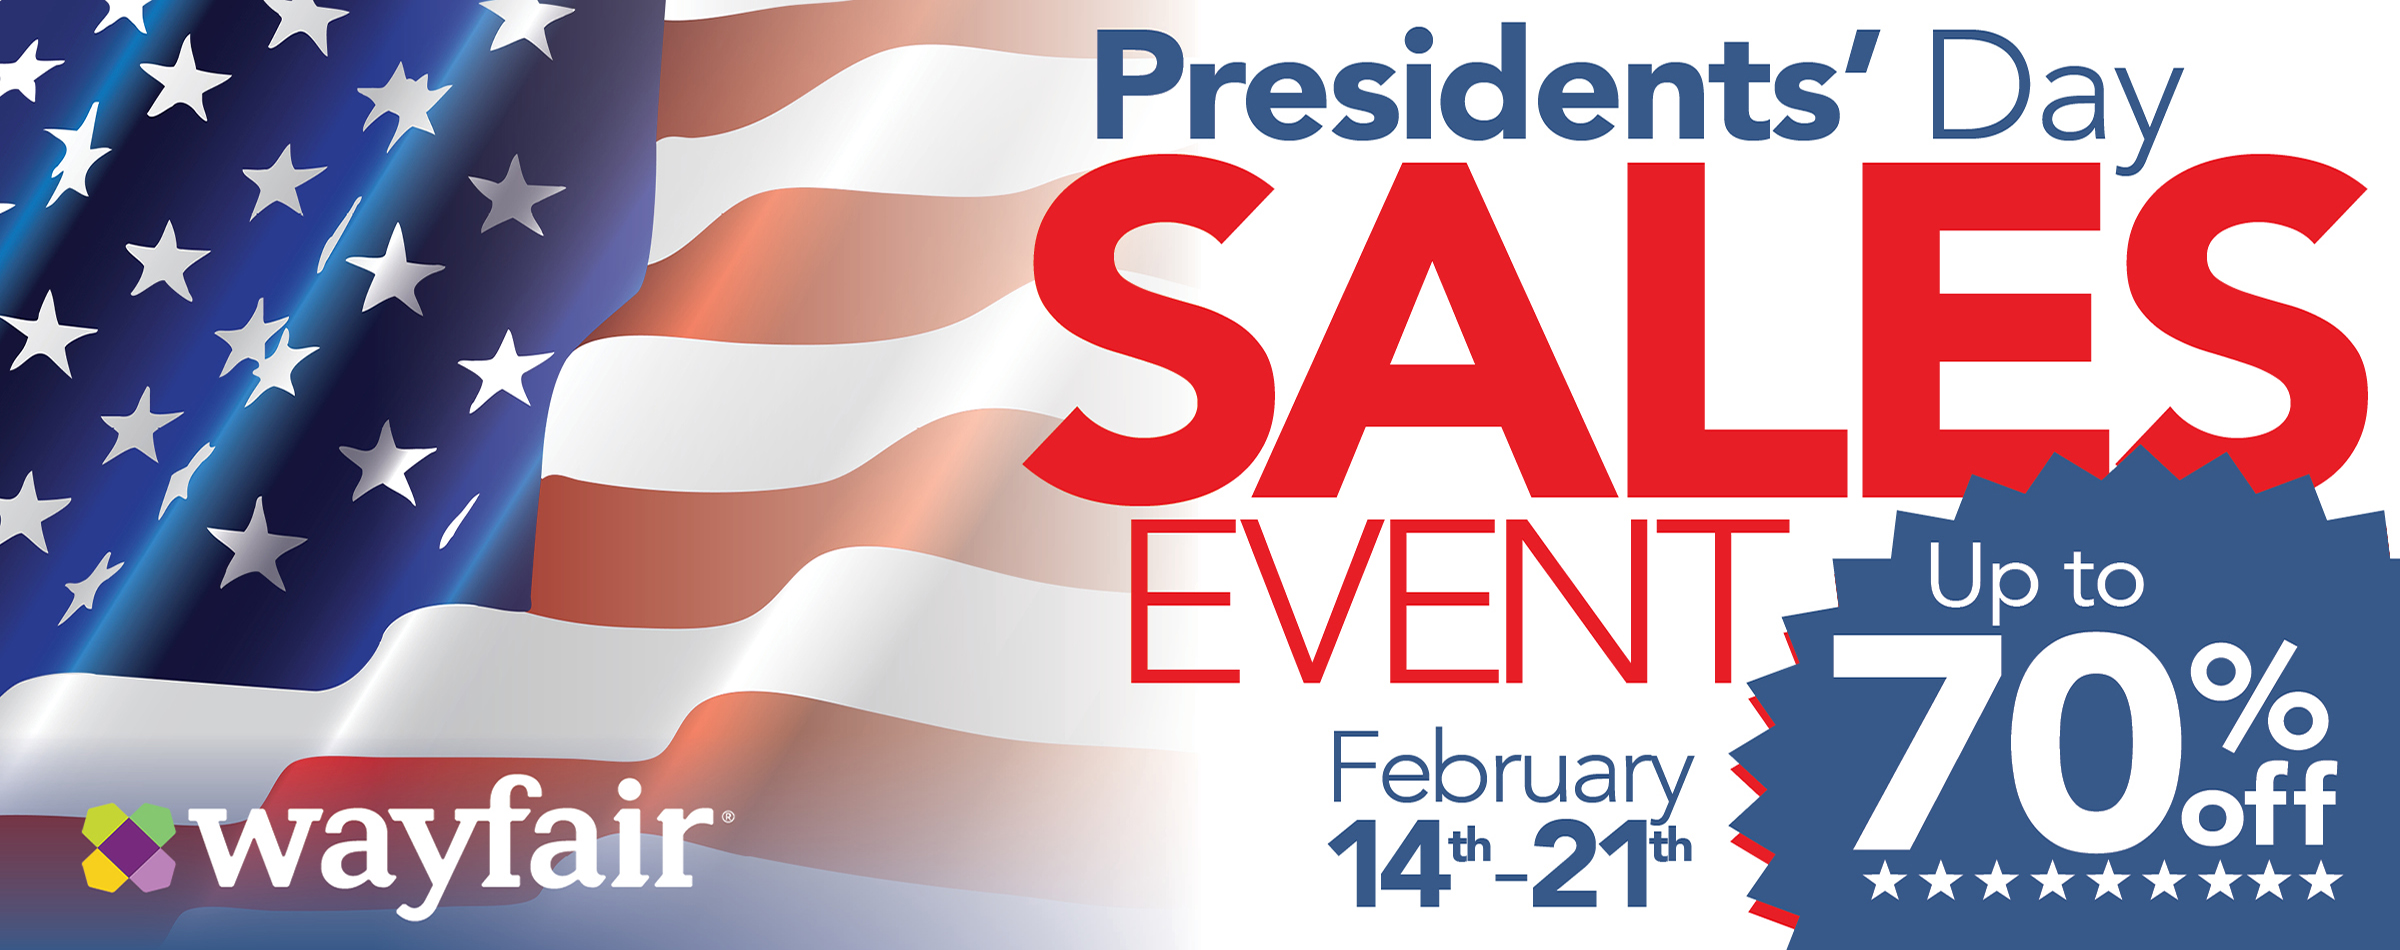 DECOLAV_Presidents_Day_SALE_Wayfair